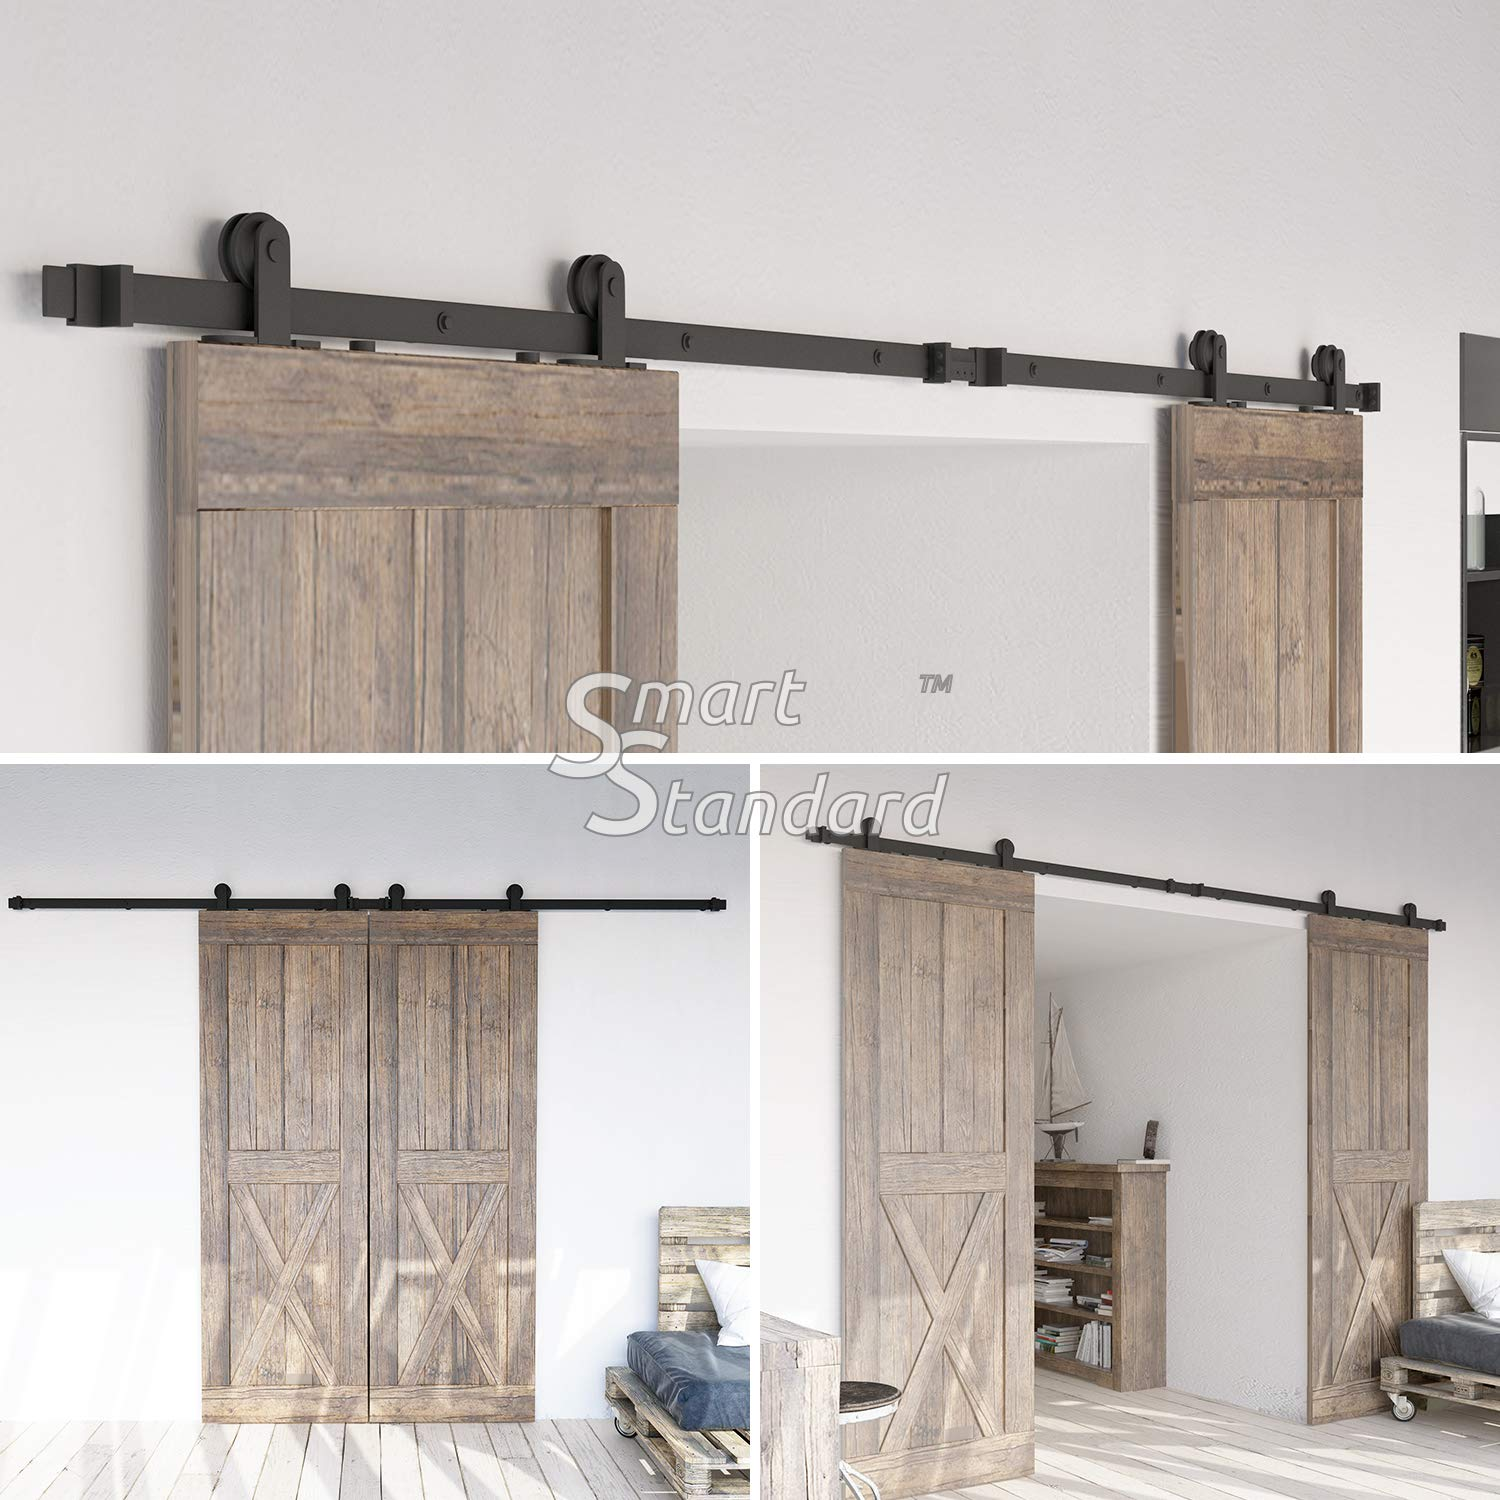 10ft Heavy Duty Sturdy Double Door Sliding Barn Door Hardware Kit - Super Smoothly and Quietly - Simple and Easy to Install - Includes Step-by-Step Instruction -Fit 30'' Wide Door Panel(T Shape Hanger) by SMARTSTANDARD (Image #2)